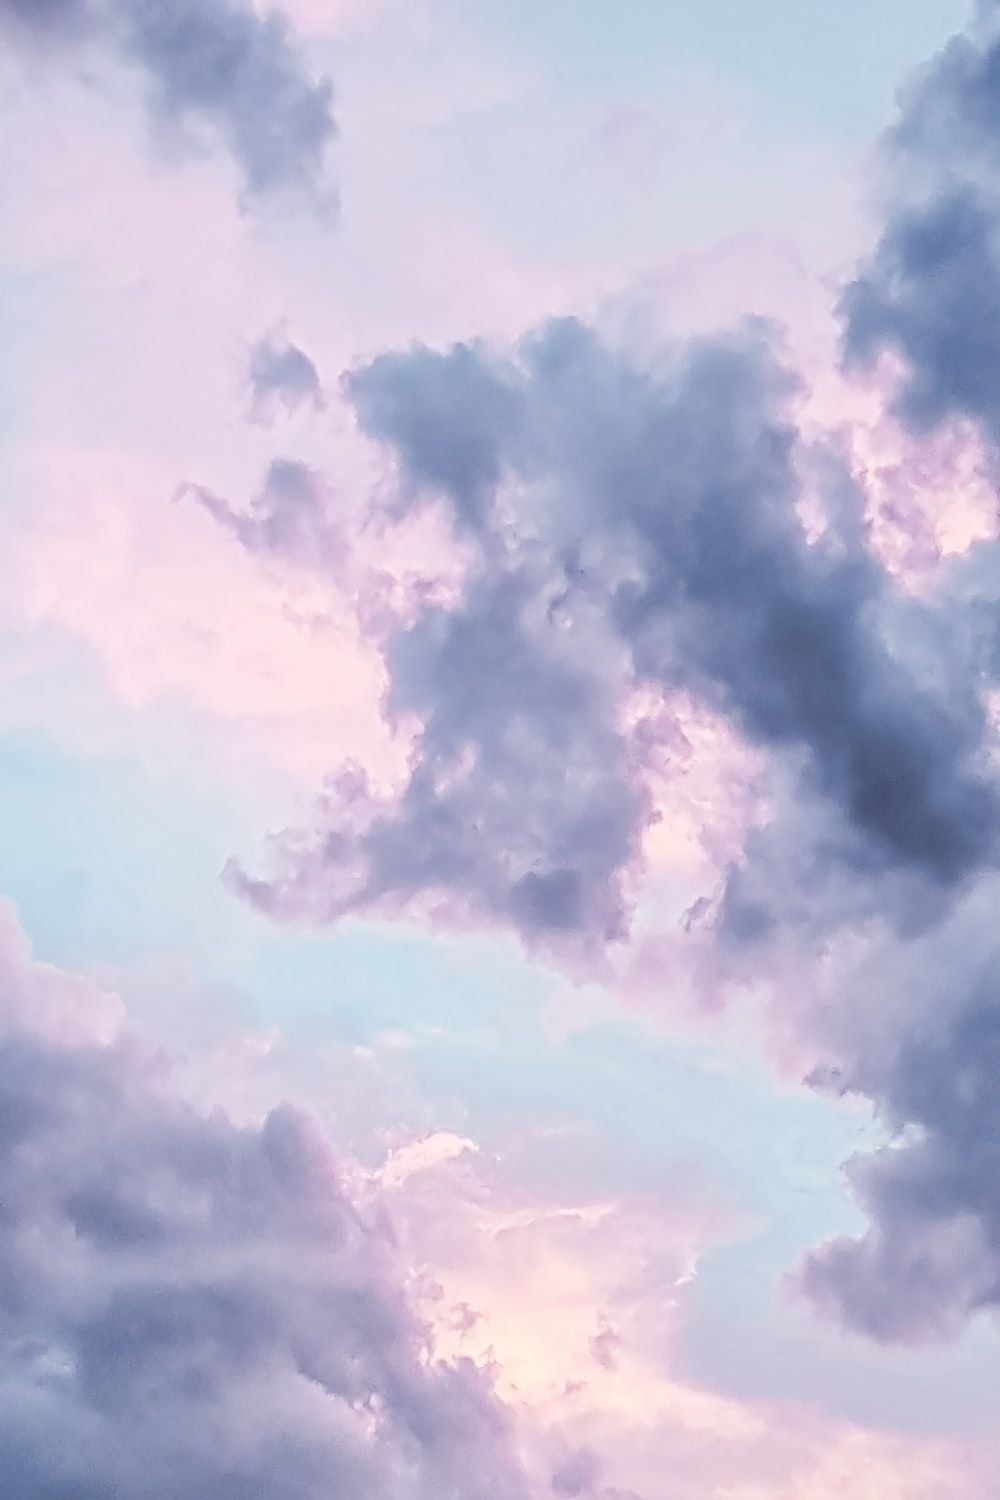 Blue Aesthetic Cloud Wallpapers On Wallpaperdog